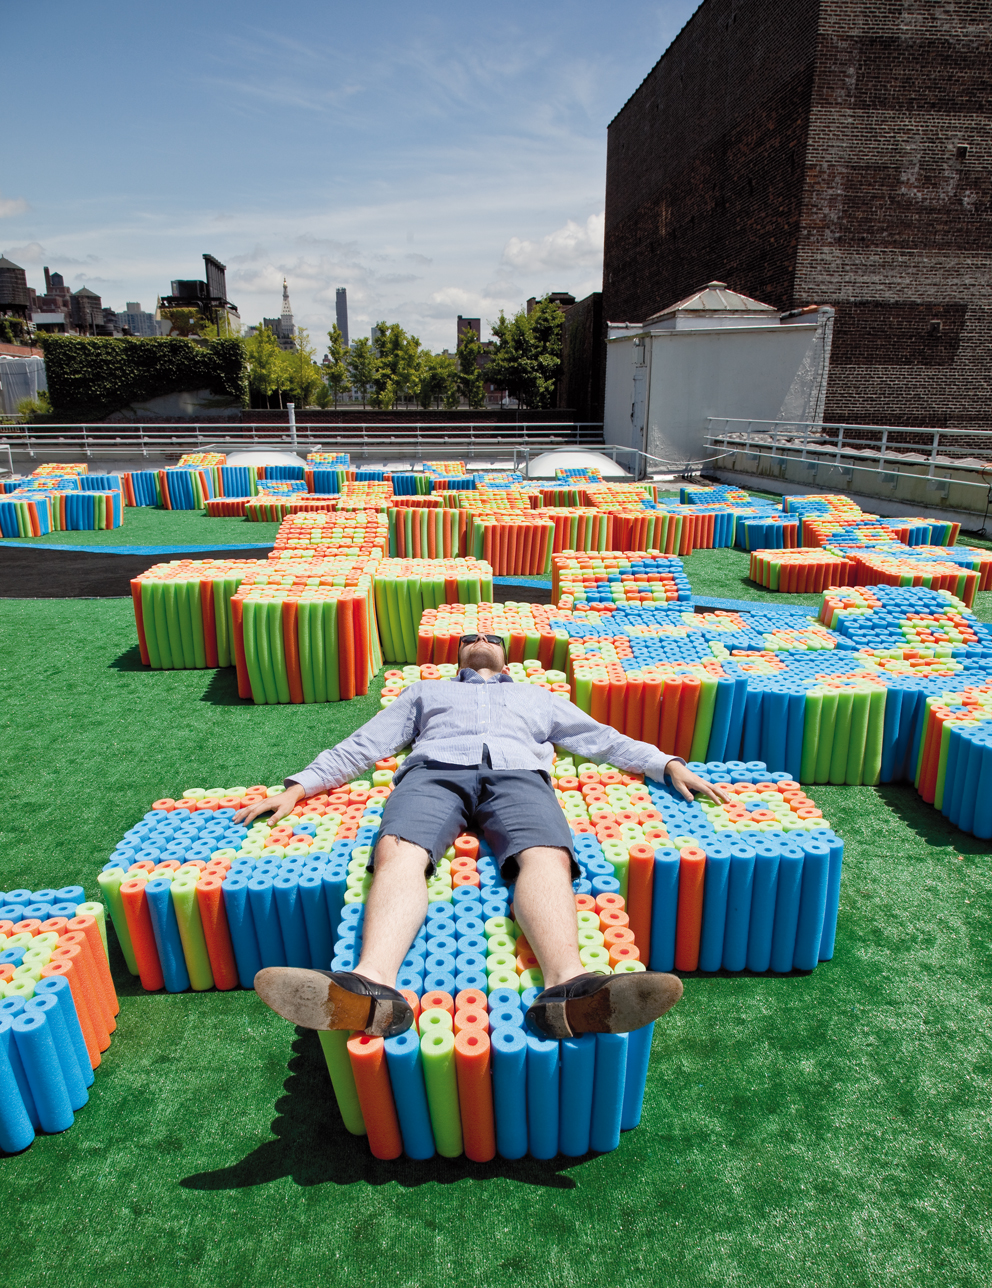 Jeffrey Inaba, Pool Noodle Rooftop, 2009. X-Initiative, New York